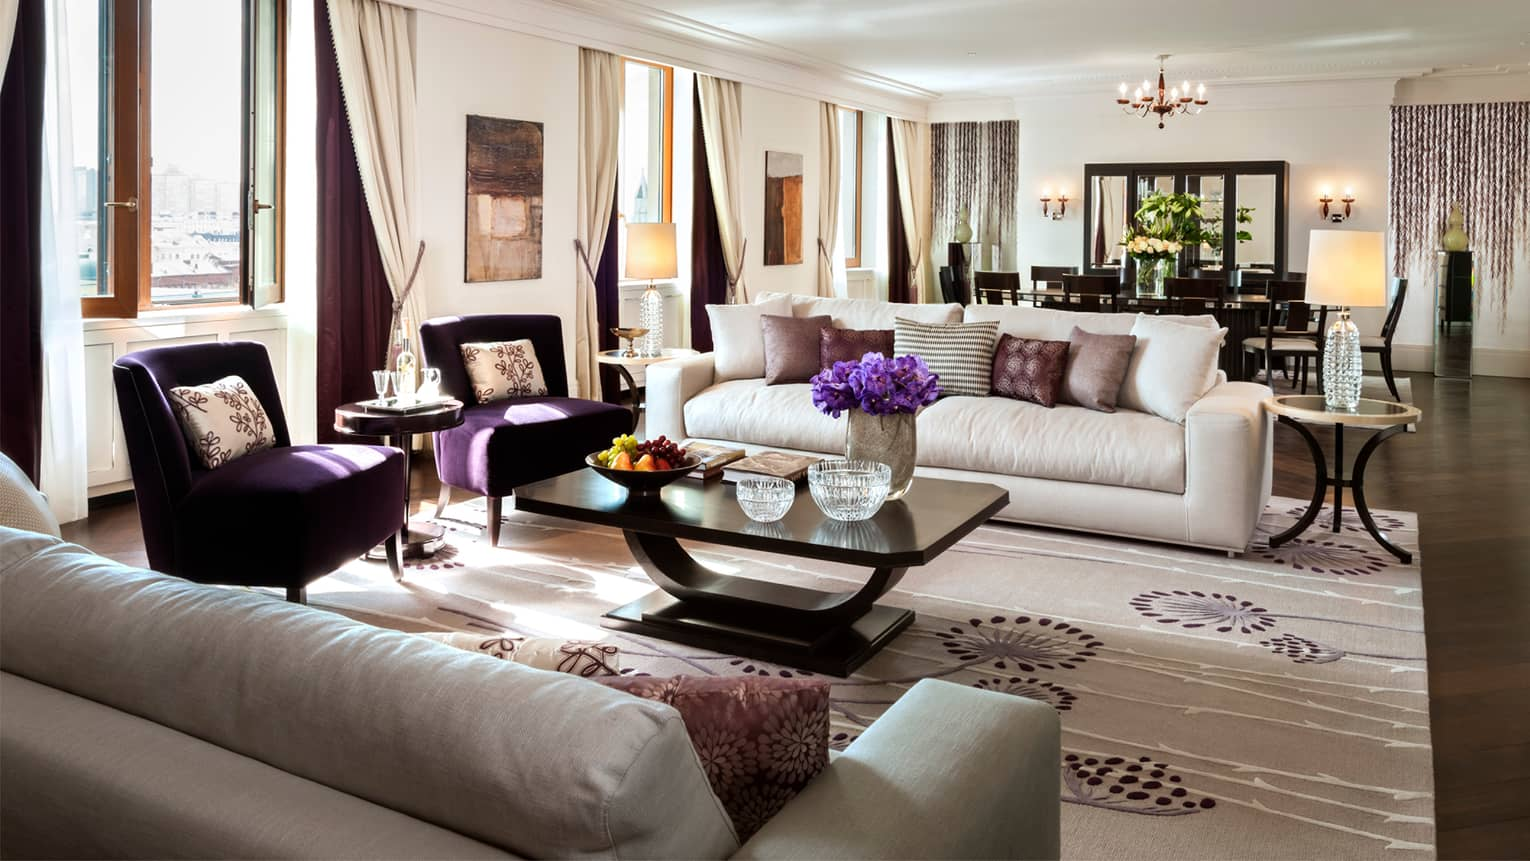 Imperial Suite living area with white sofas, dark purple armchairs, private dining table for 10